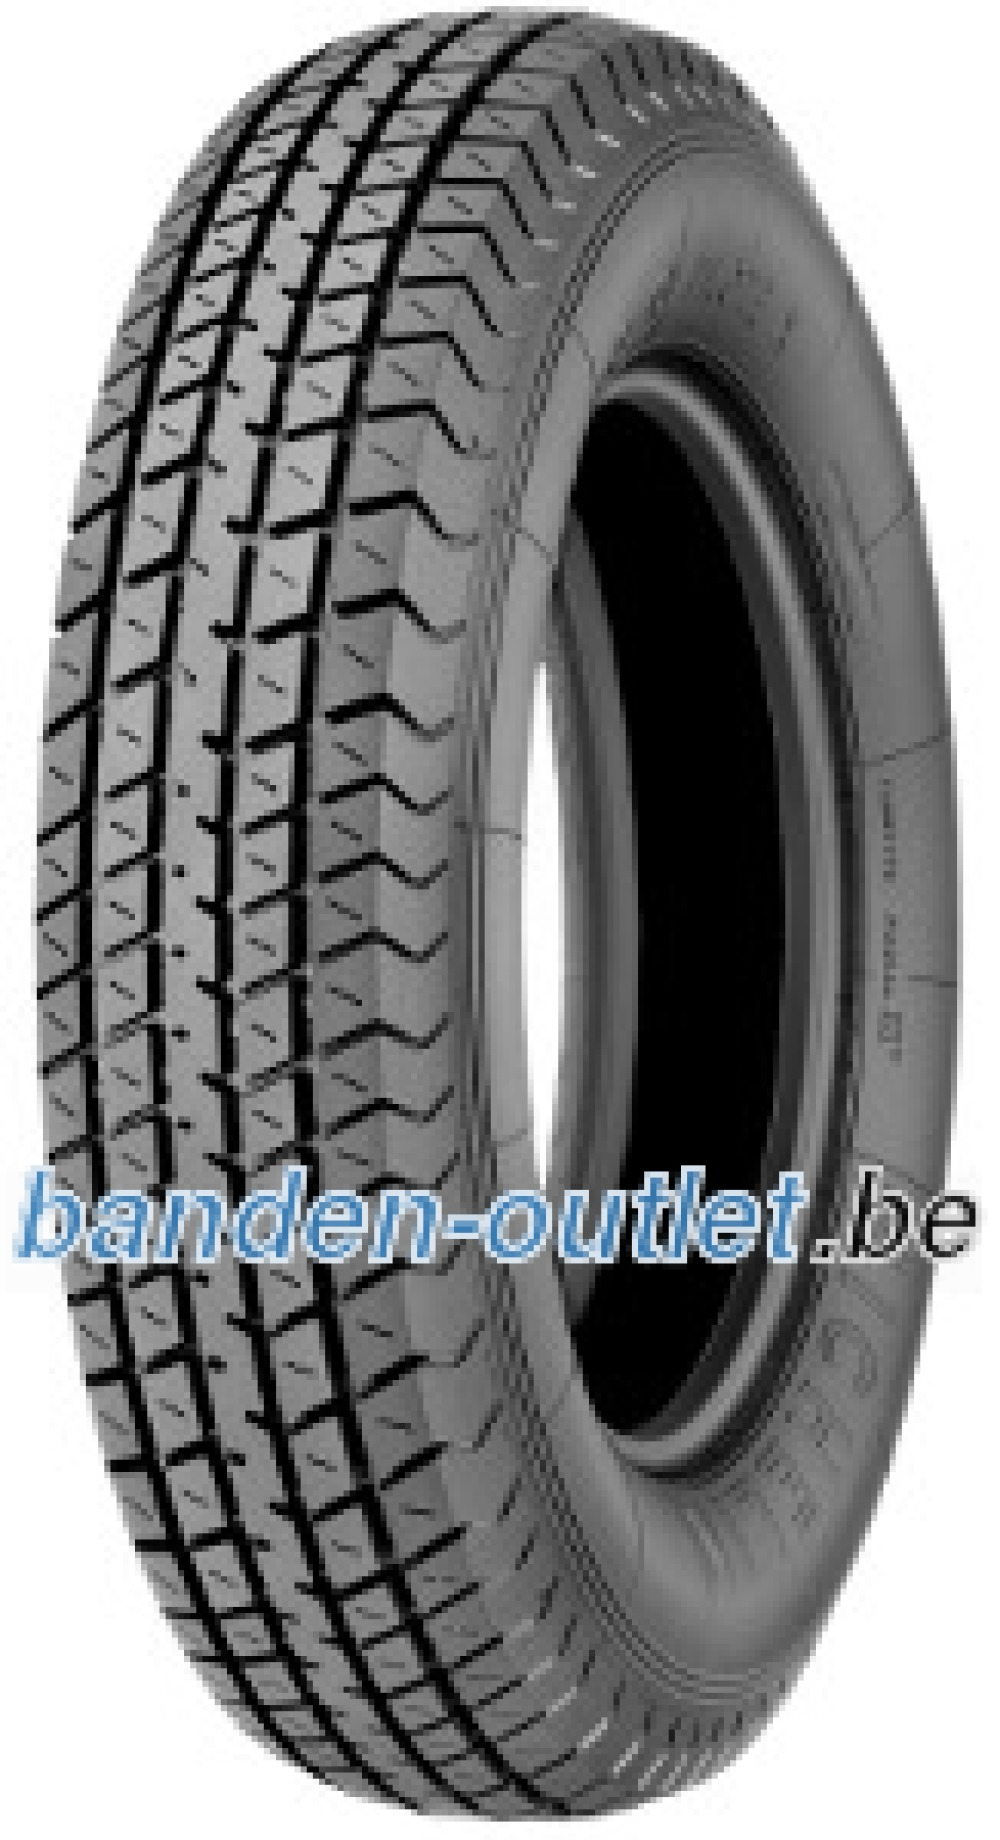 Michelin Collection Pilote X ( 6.00 R16 88W WW 40mm )